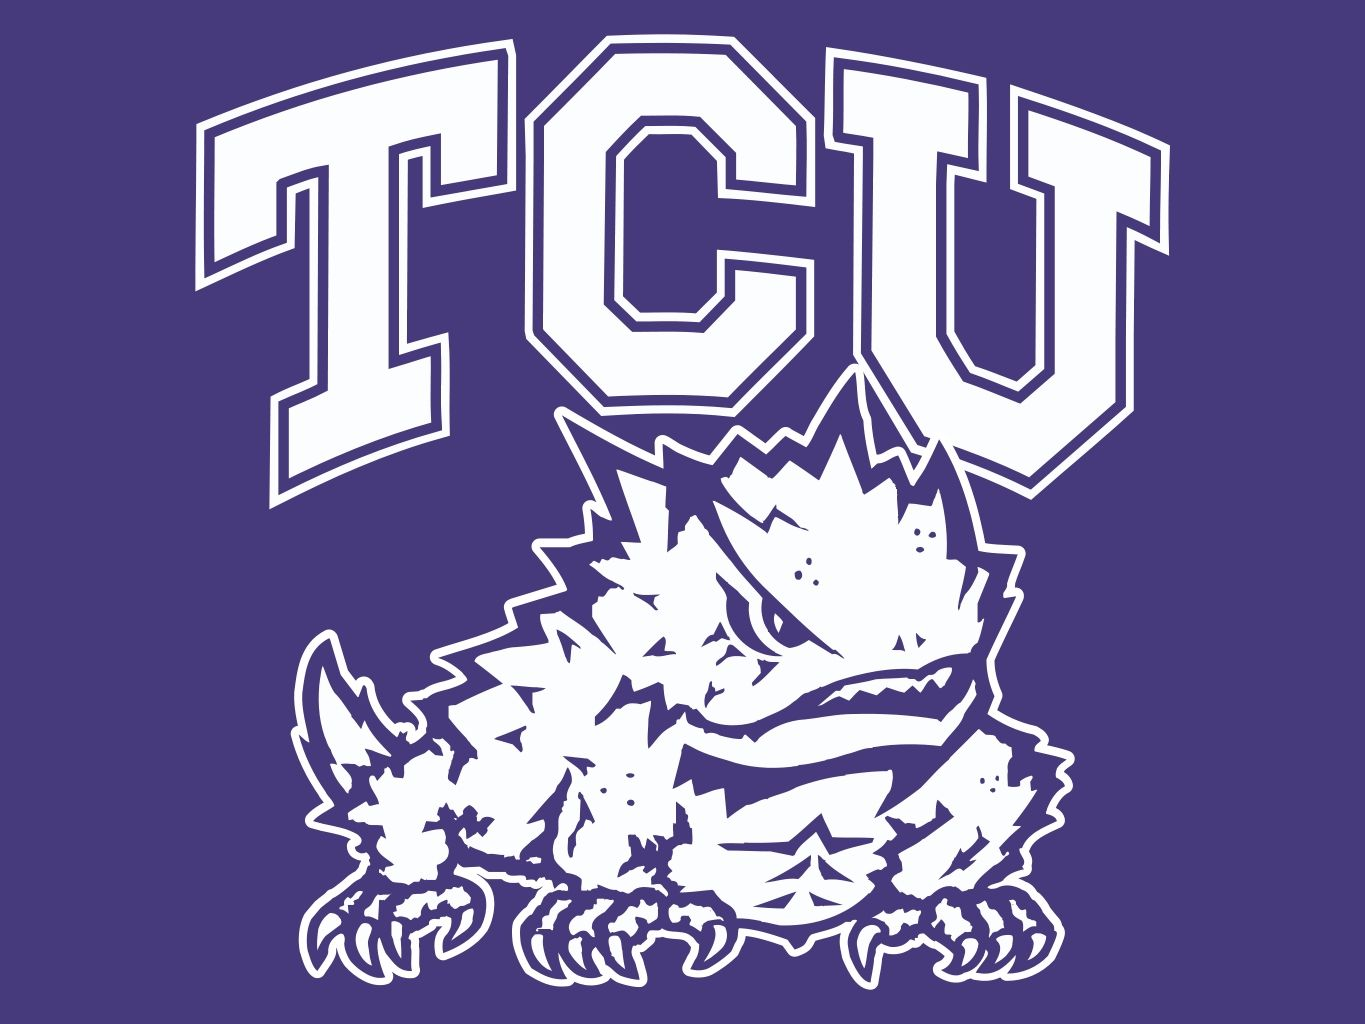 proud to be a horned frog! Tcu horned frogs, Horned